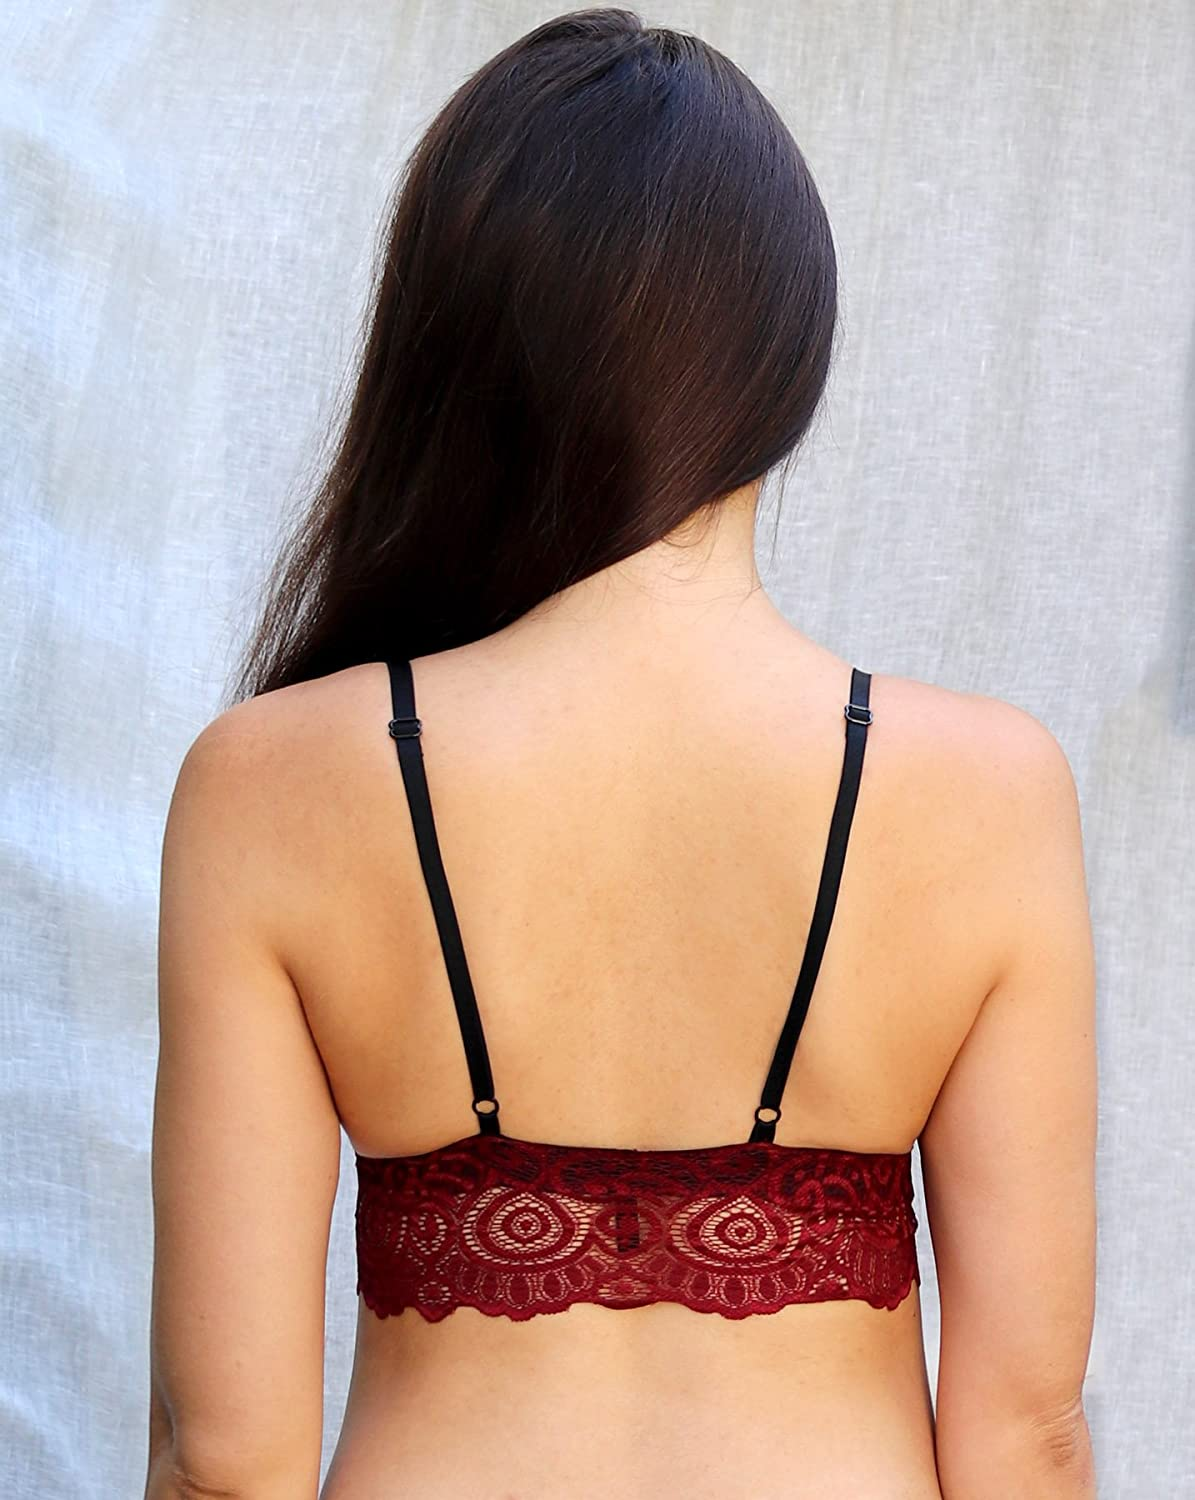 a565d419d5 Burgundy Scalloped Edge Bra Top. Wireless Bra. Handmade Lingerie  Handmade